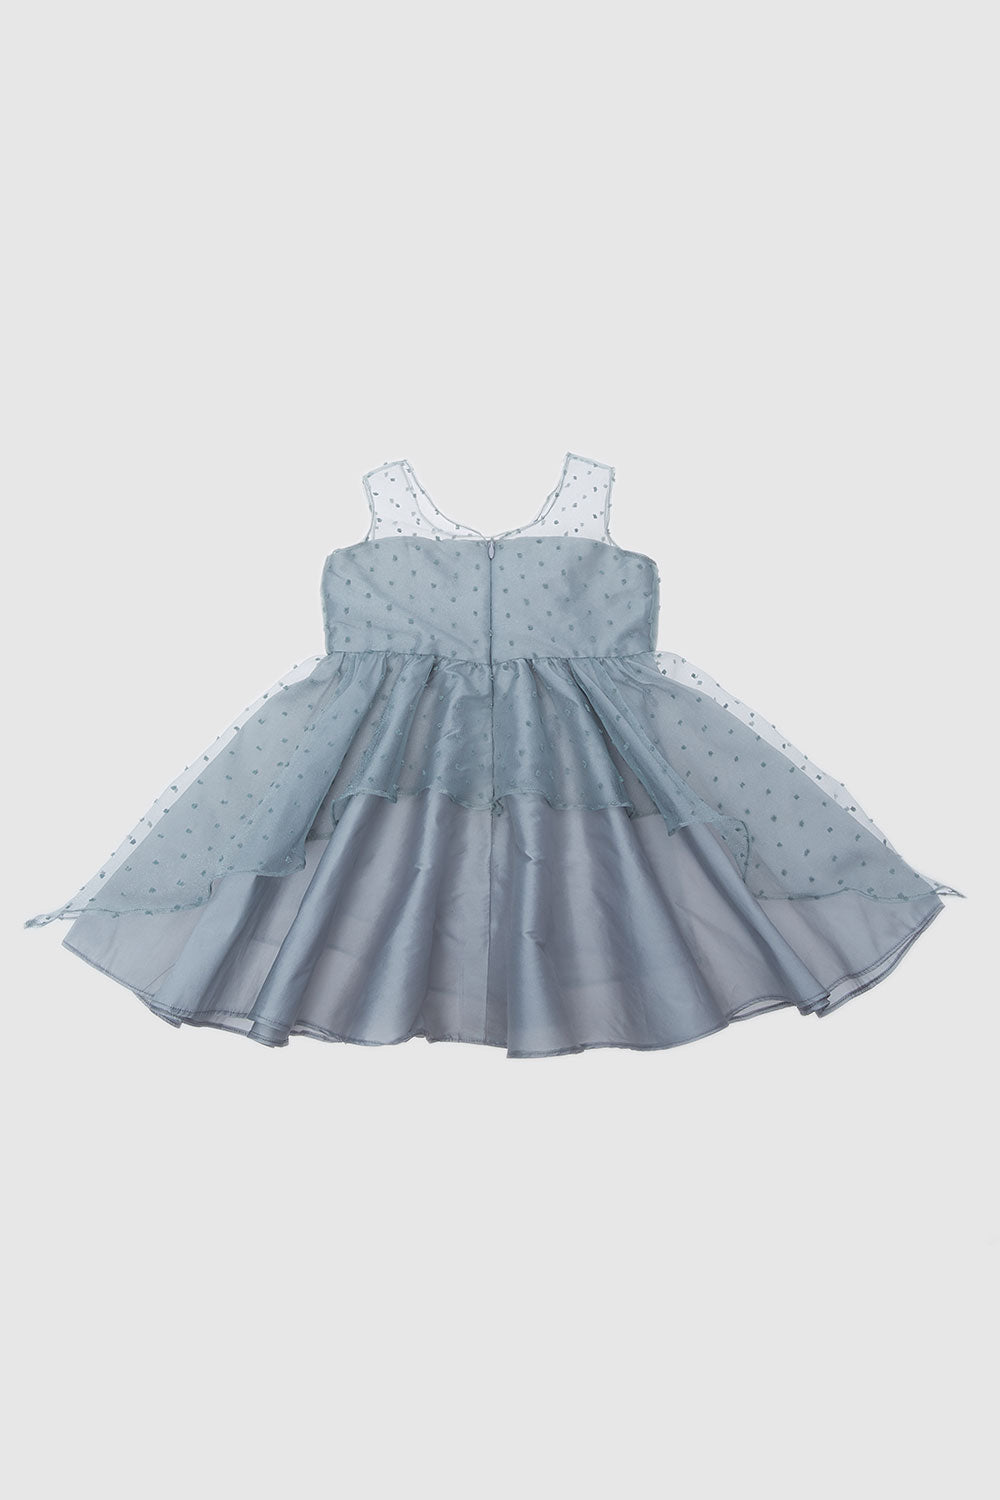 The Kaia Co Poppy Dress in Grey